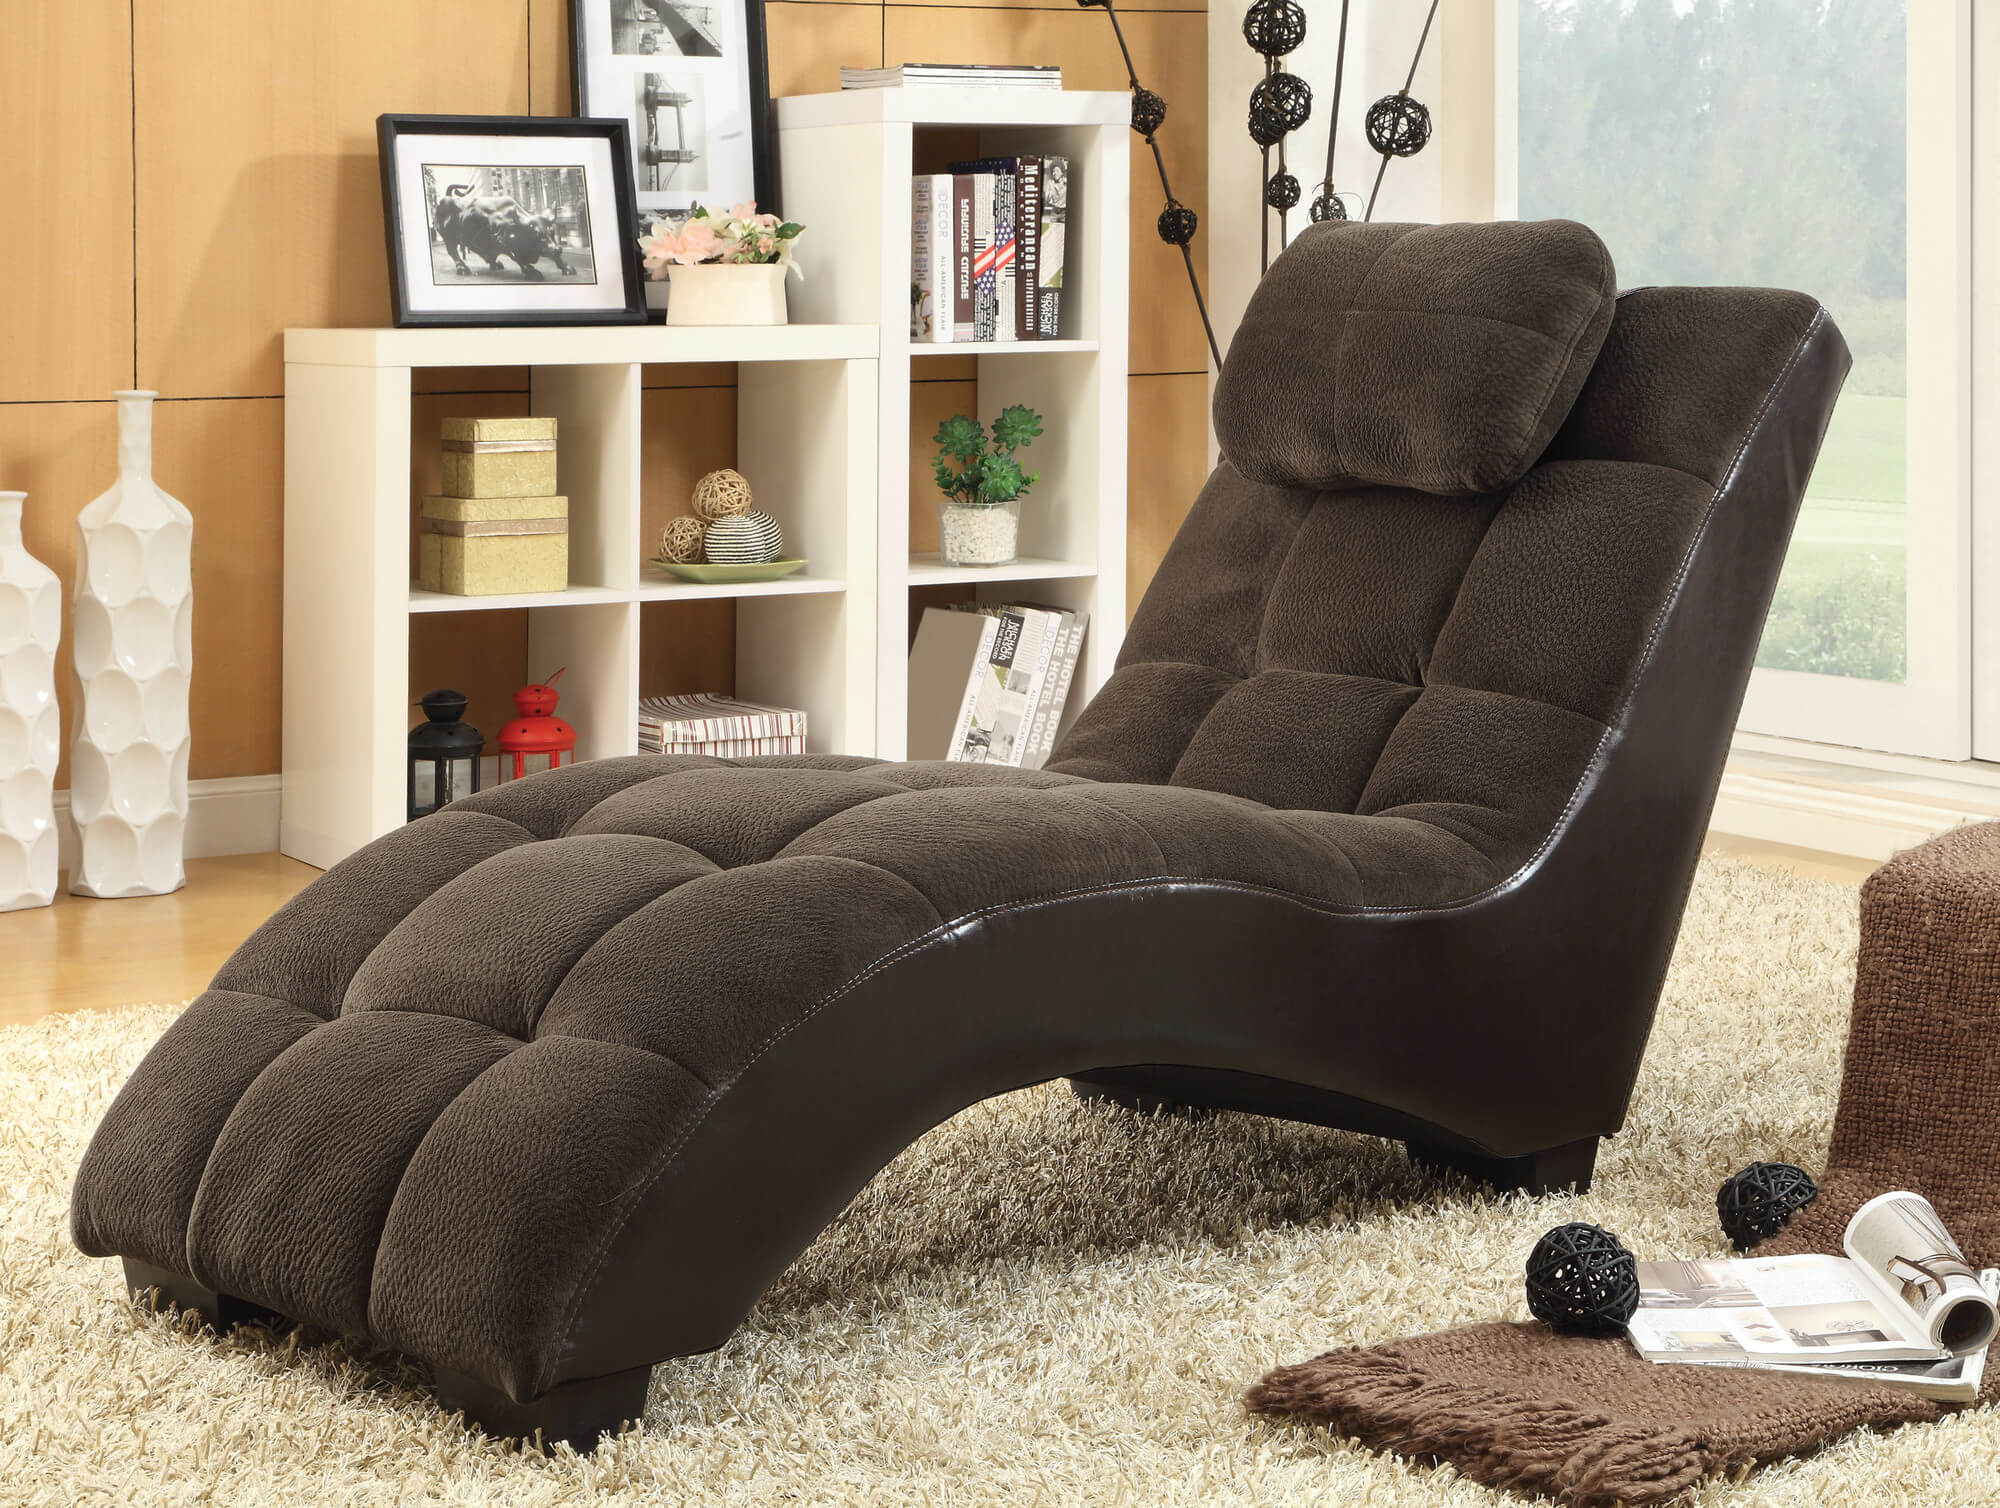 The armless variant of chaise lounge chairs is a minimalist affair, with a simple curved shape forming the frame below a full body cushioned area.